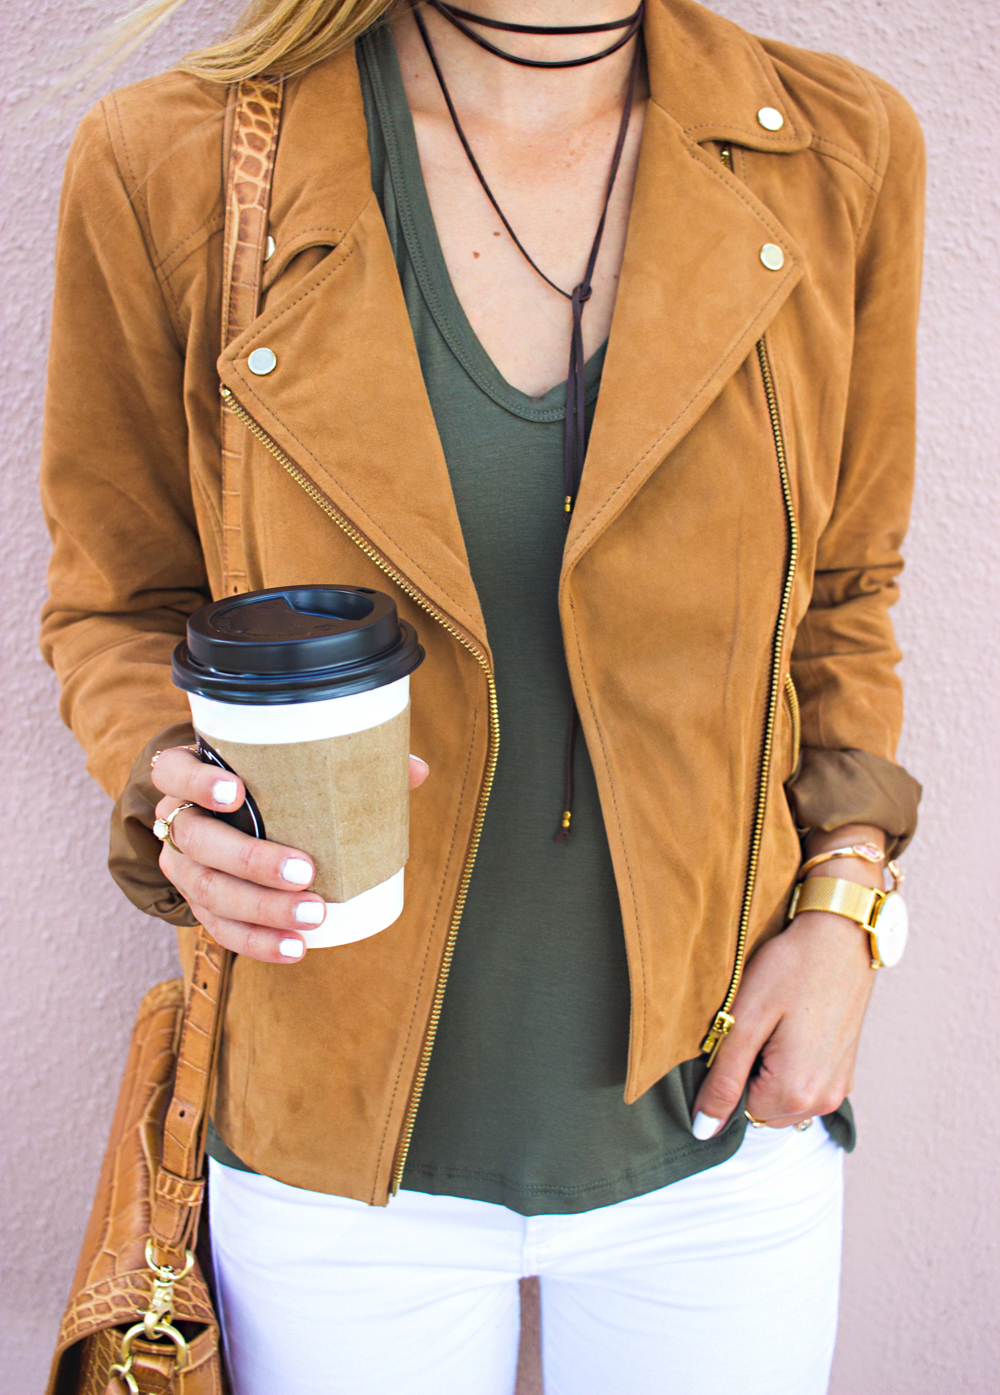 livvyland-blog-olivia-watson-boho-ootd-nordstrom-anniversary-sale-must-haves-what-to-buy-suede-tan-jacket-fall-summer-outfit-cluse-gold-watch-4